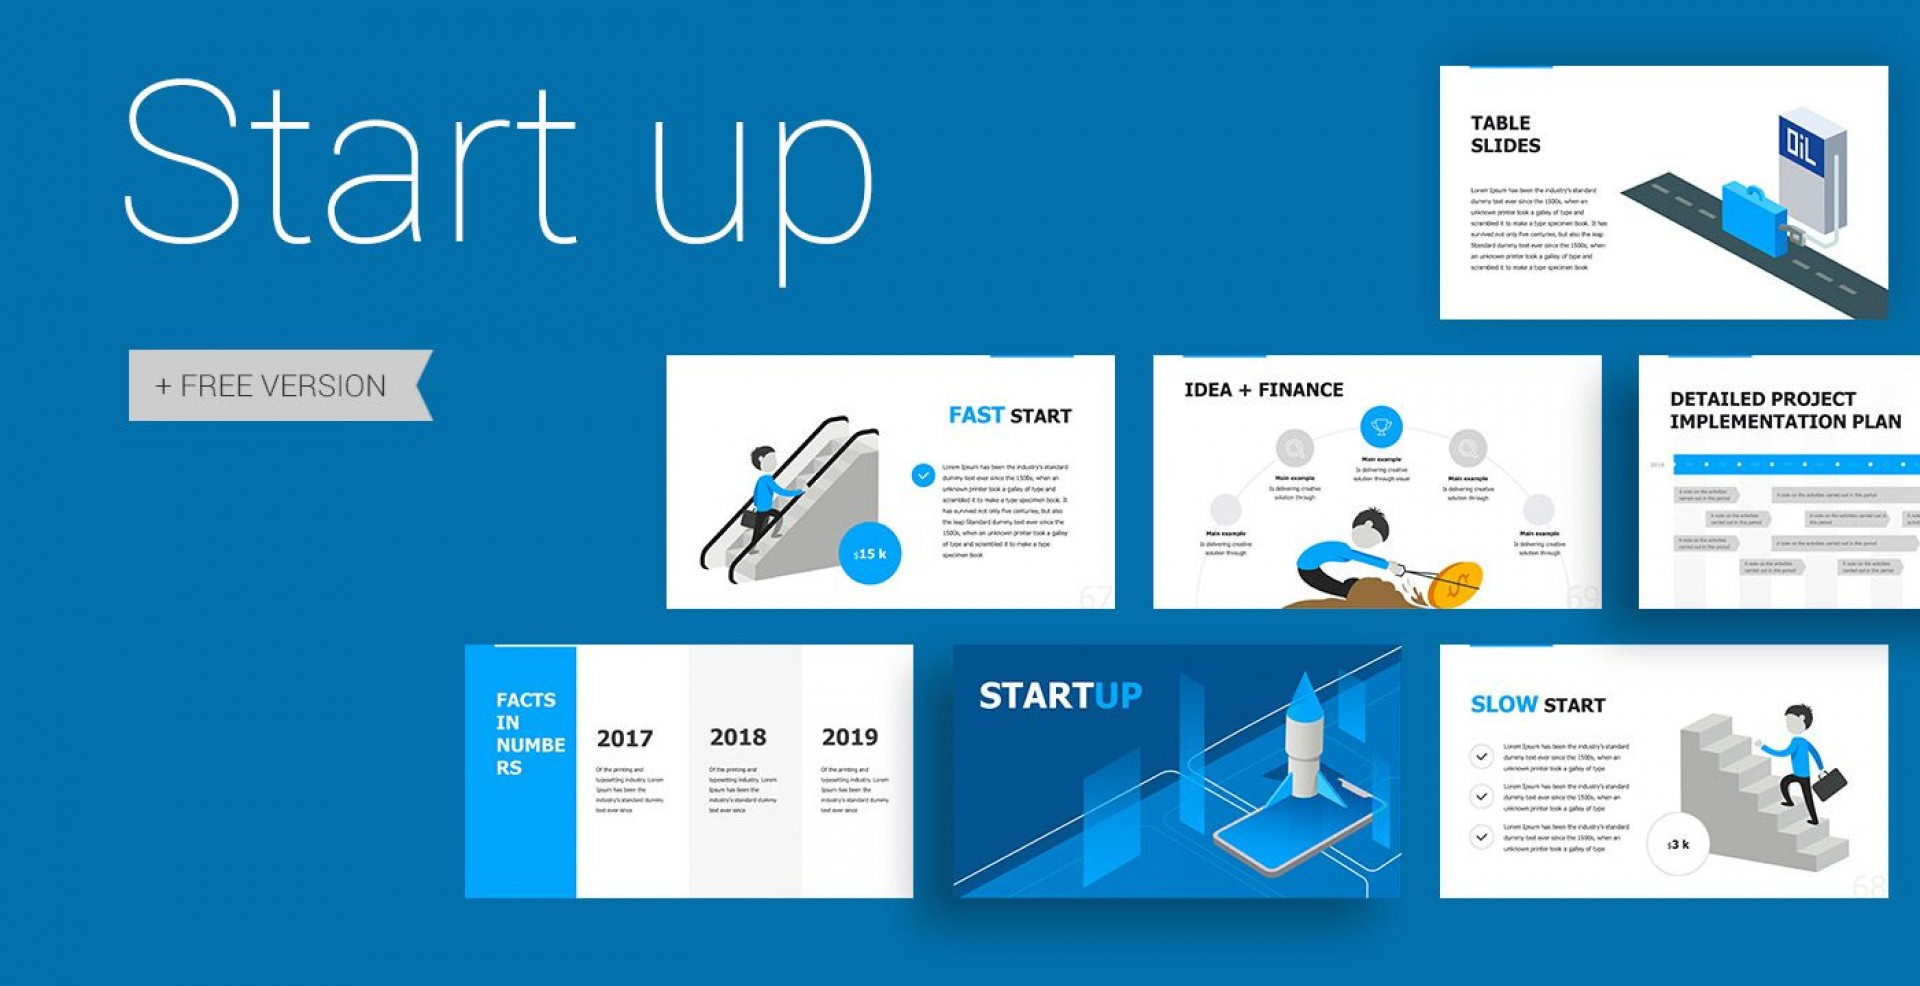 008 Breathtaking Power Point Presentation Template Free Picture  Powerpoint Layout Download 2019 Modern Busines1920